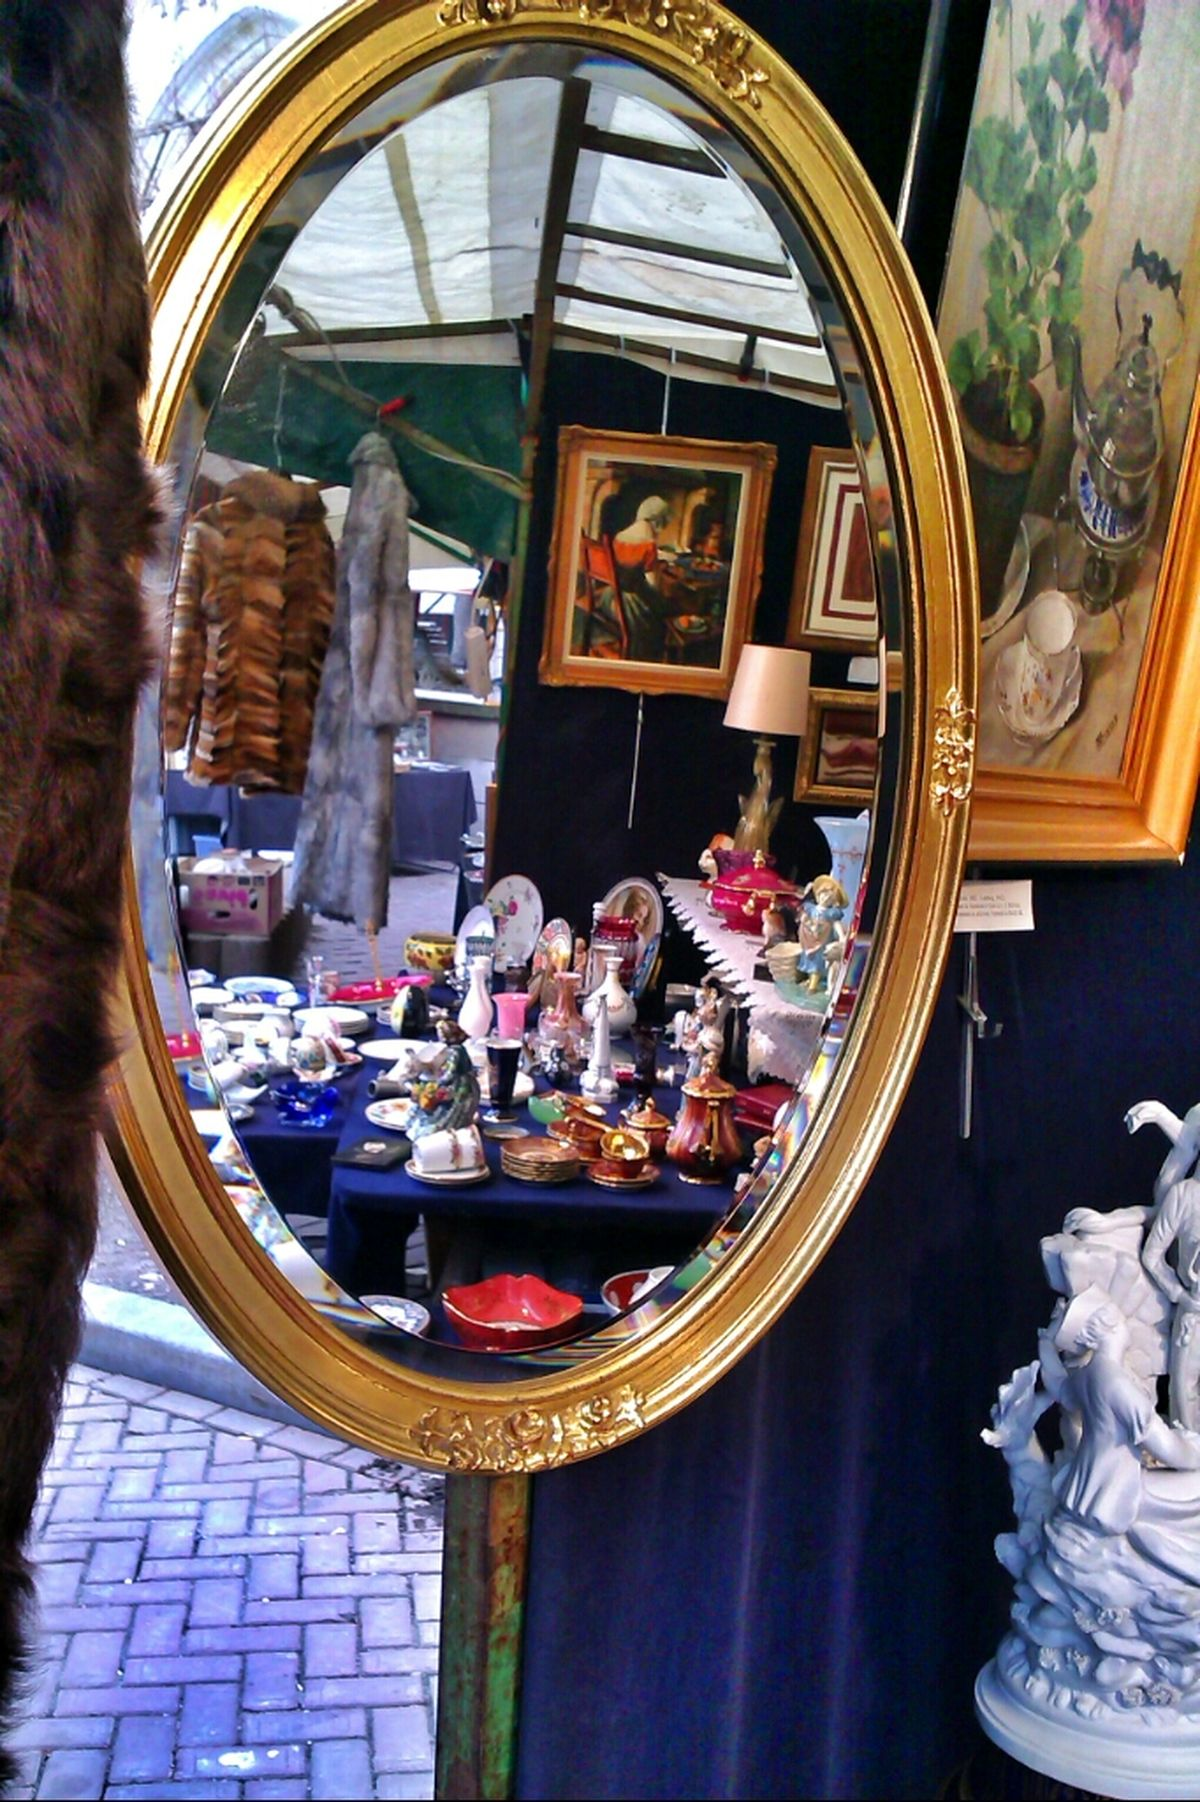 Reflections Mobile Photography Sunday Afternoon Colourful Antiques Sunday Market EyeEm_Bruxelles Brussels_Diary Exploring Brussels HTC_photography Antinque Market